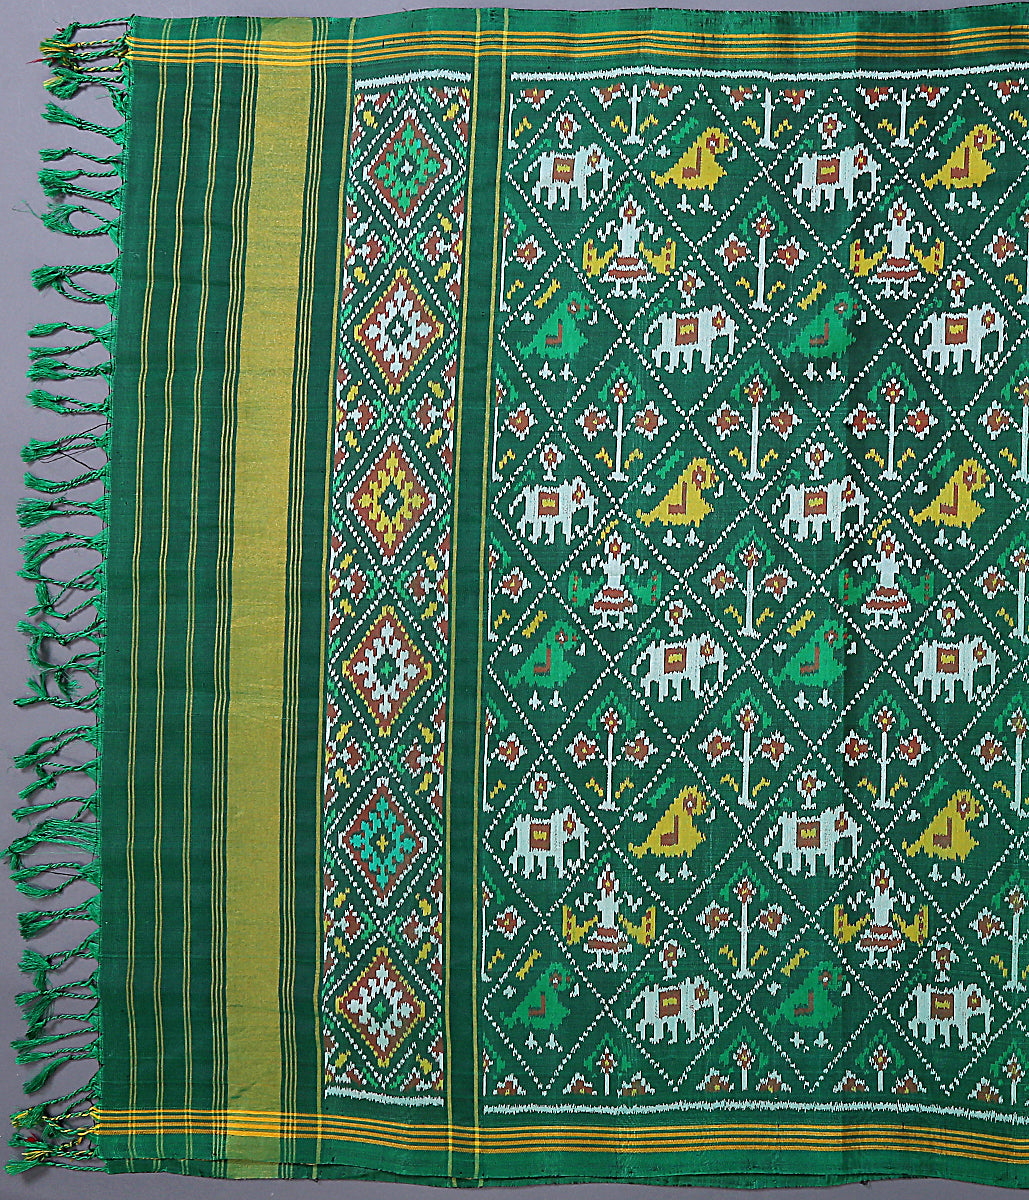 Green Single Ikat 8 ply Patola Dupatta